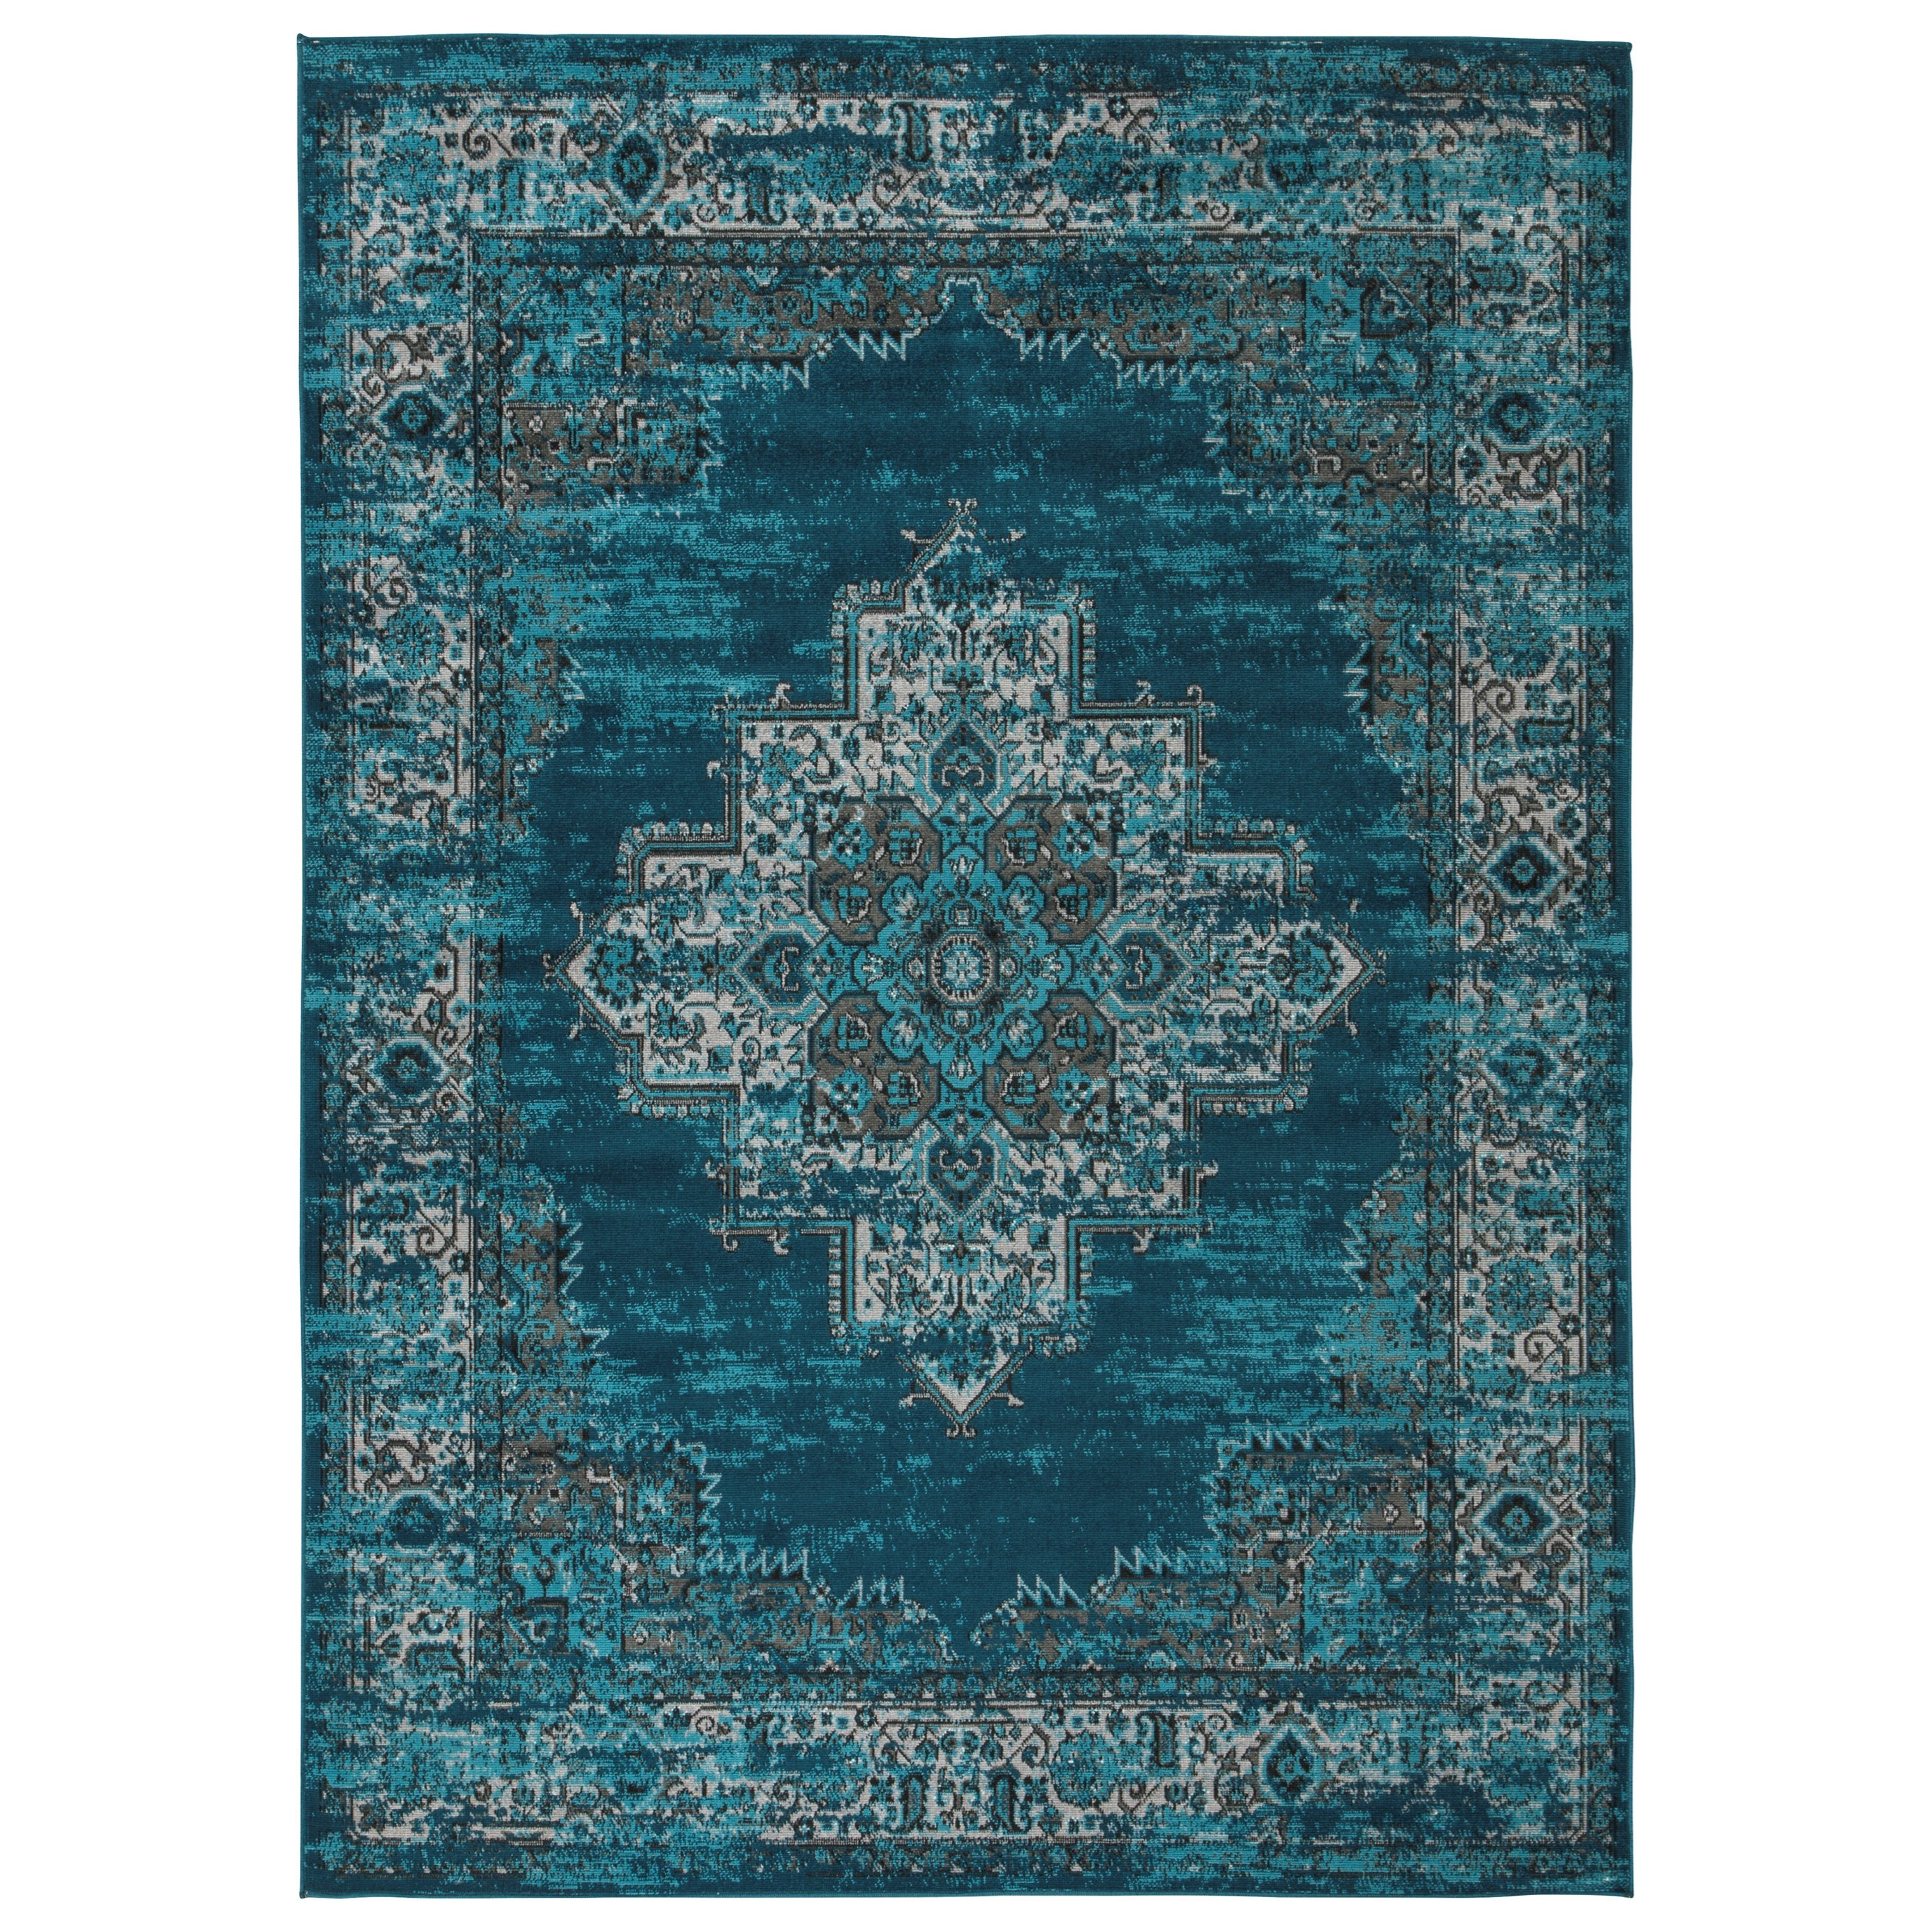 Traditional Classics Area Rugs Moore Blue/Teal Large Rug by Signature Design by Ashley at Northeast Factory Direct